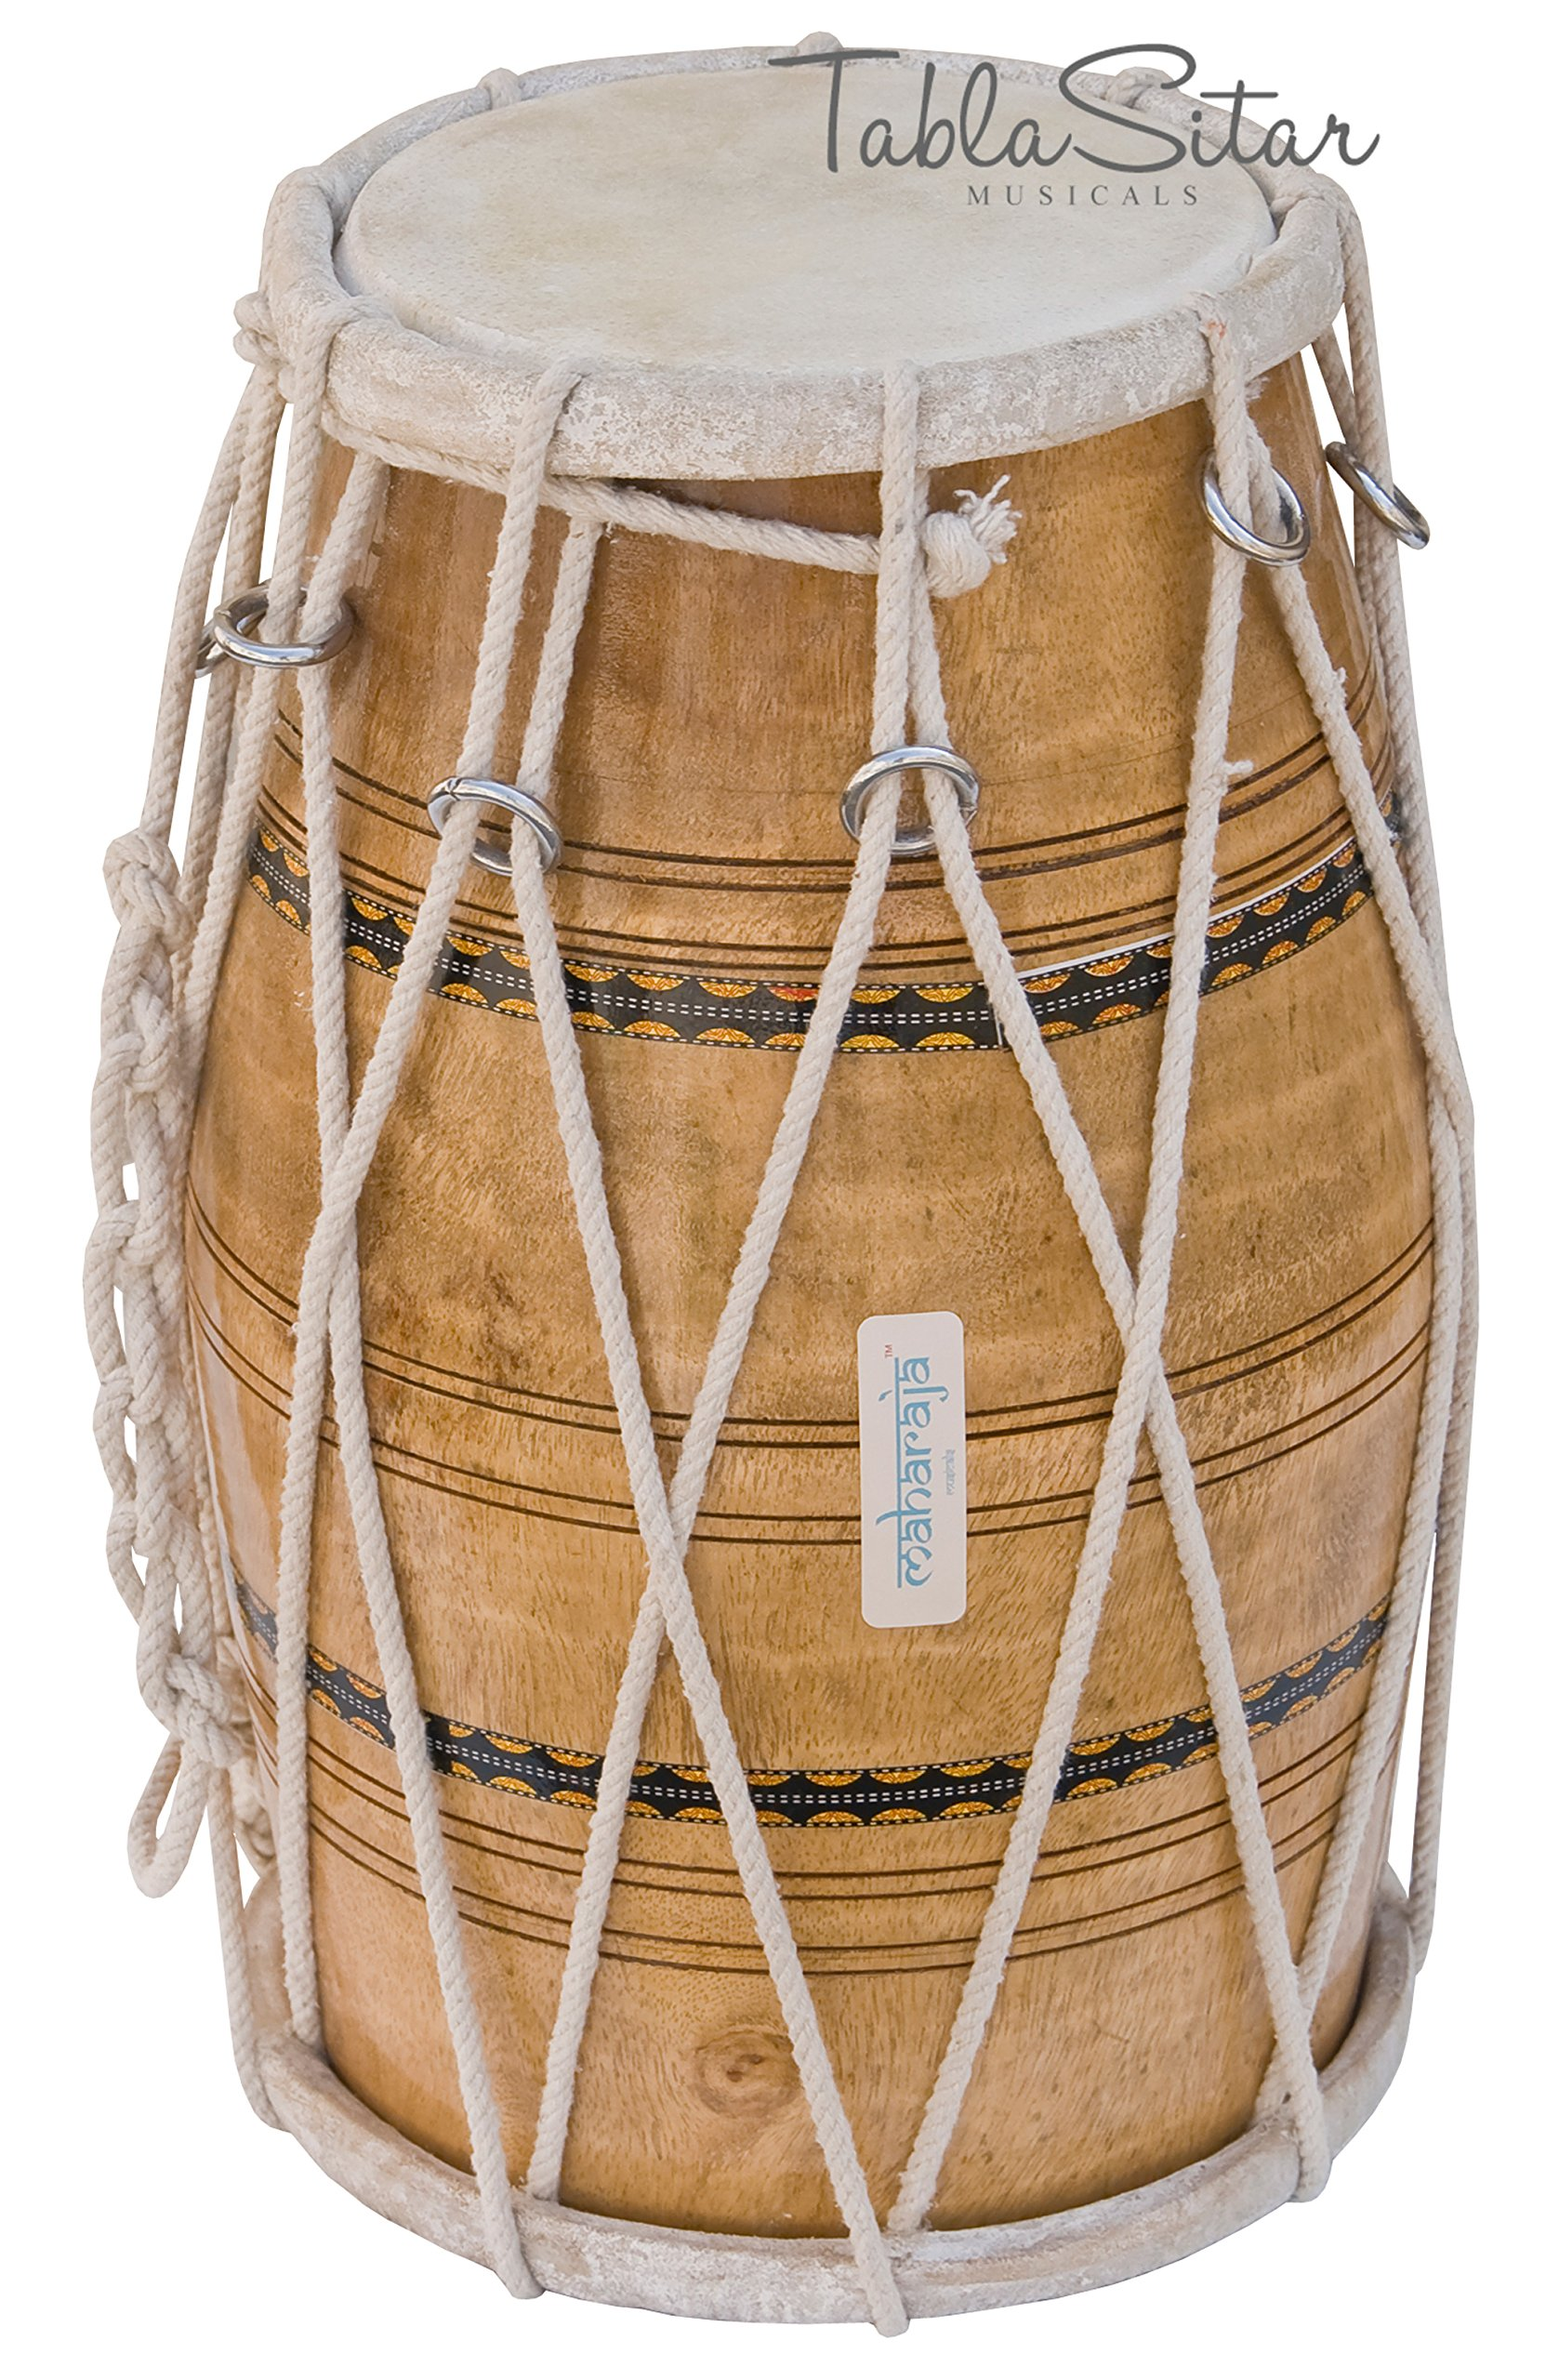 Maharaja Musicals Dholak/Dholki Drum, Natural, Mango Wood, Rope-tuned, Padded Bag (PDI-AJE) by Maharaja Musicals